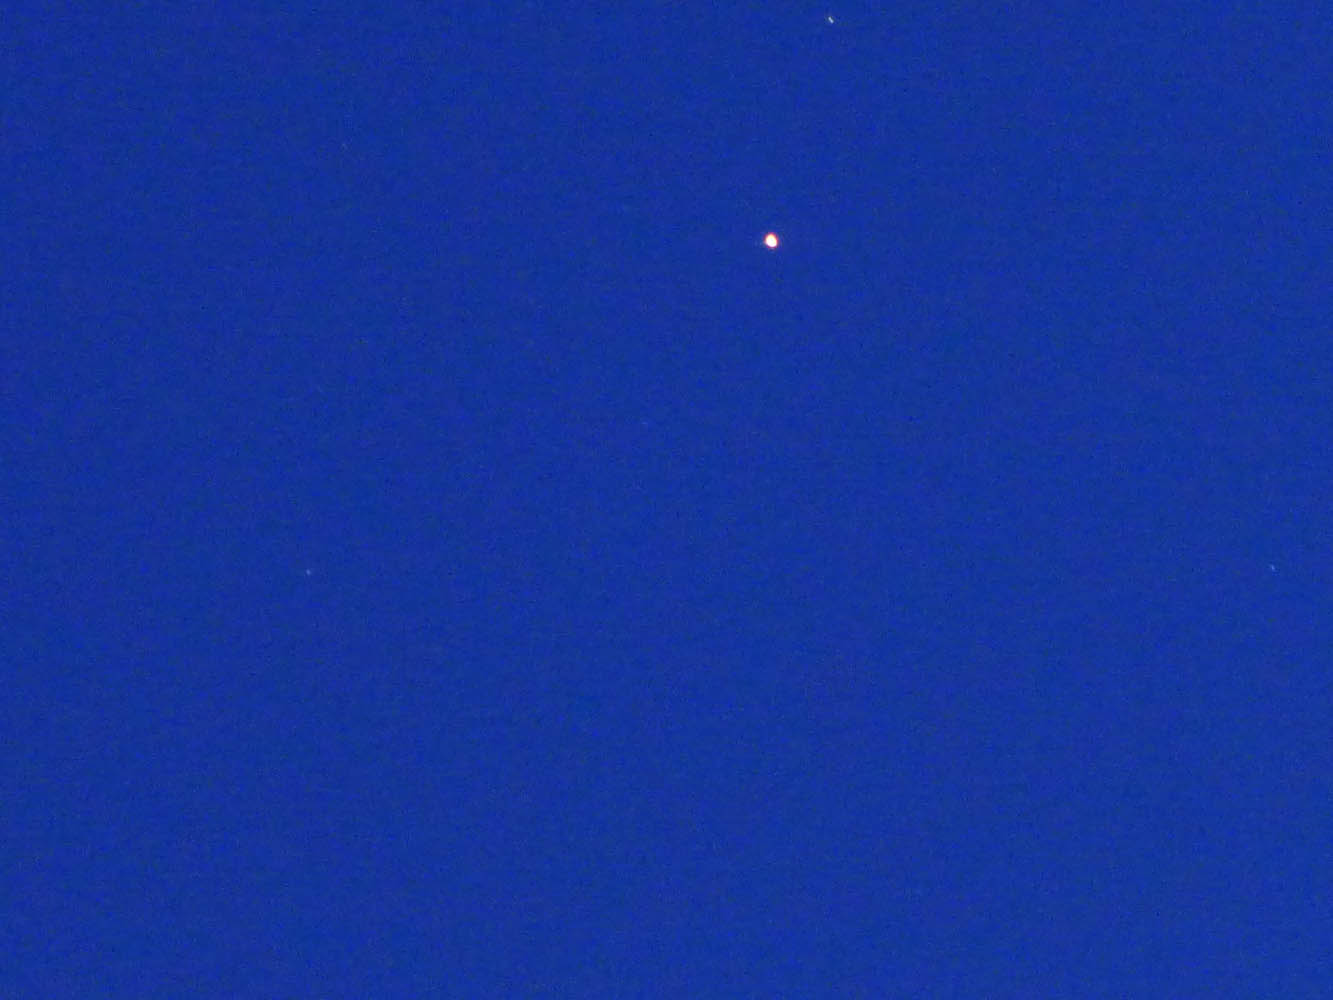 See that bright dot in the sky? That's Jupiter!